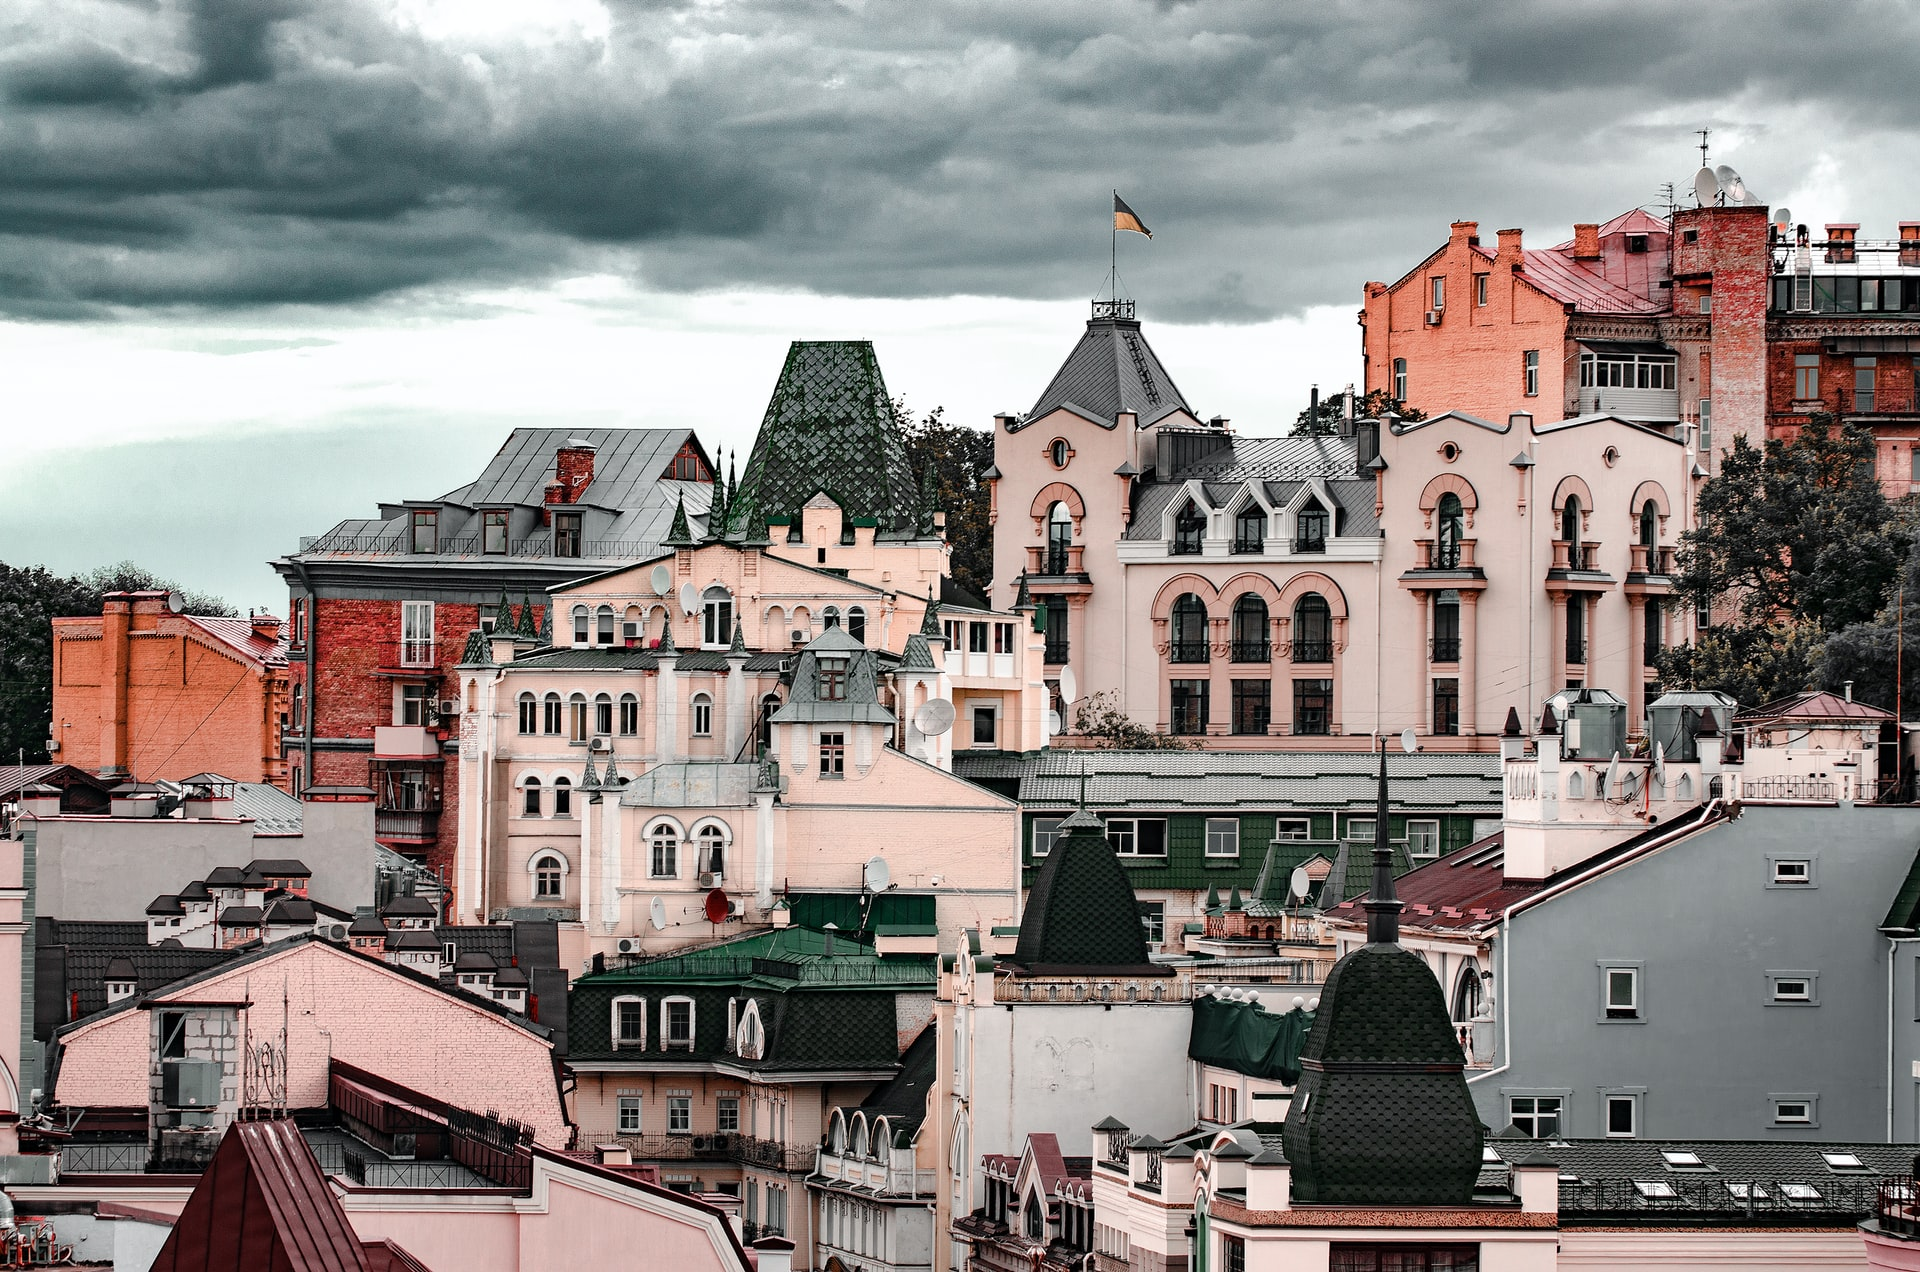 What should be checked before buying a real estate in Ukraine?